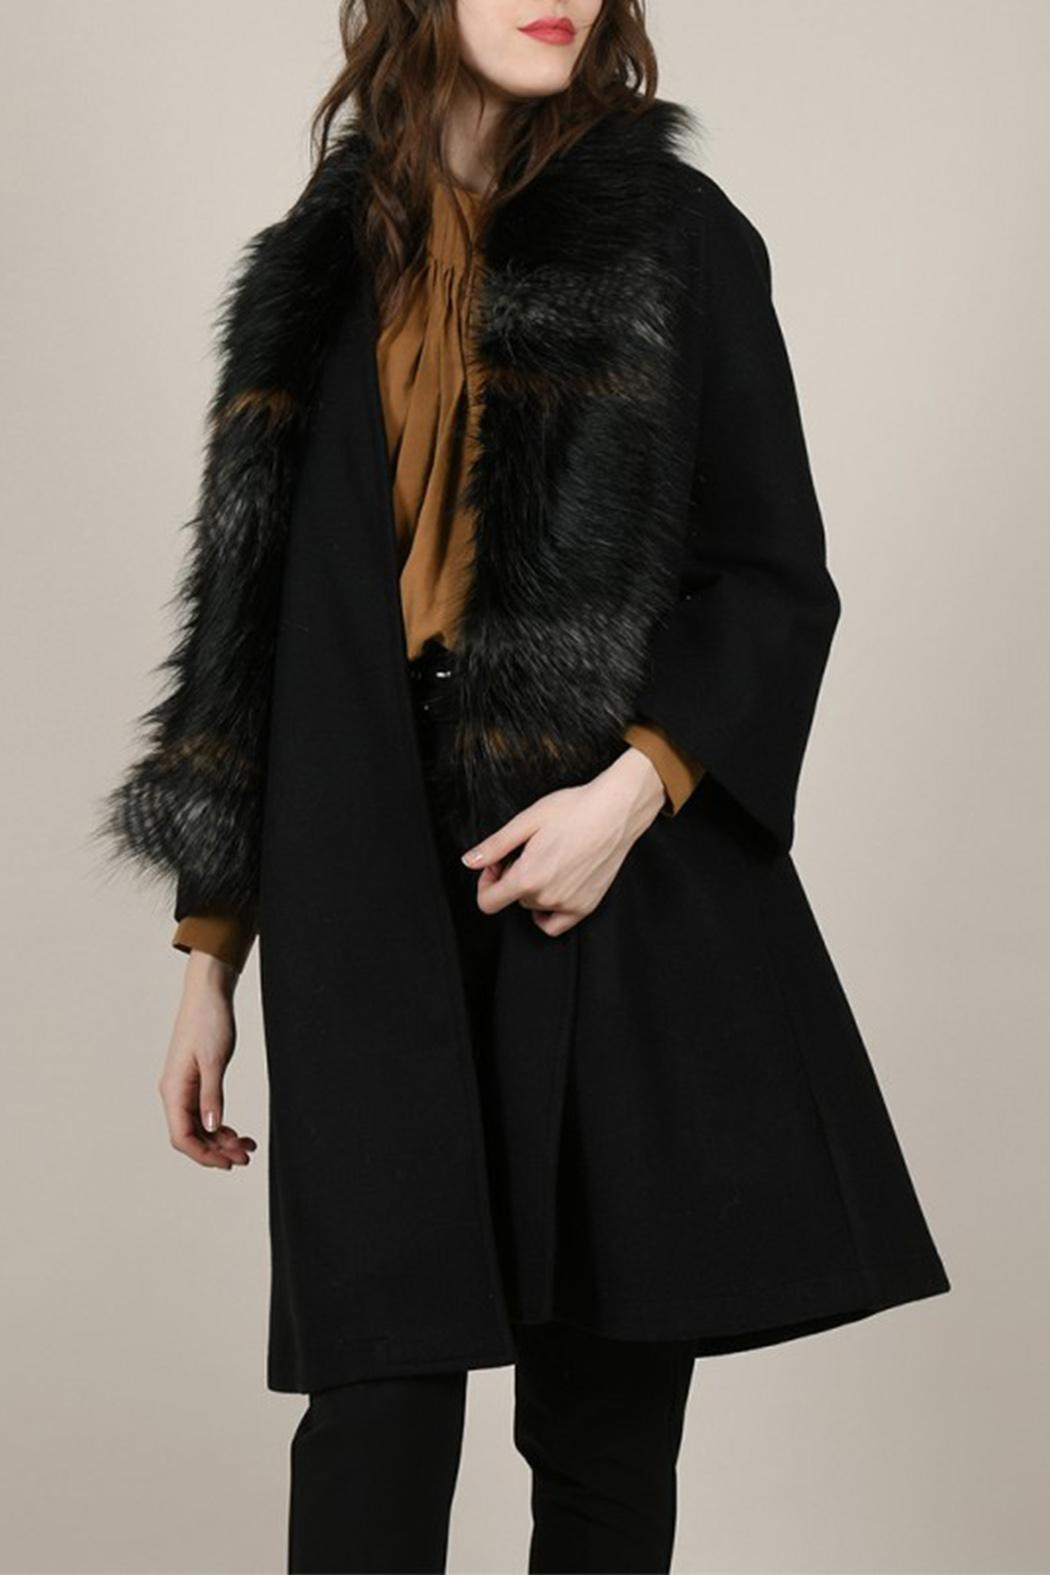 Molly Bracken Overlay Coat - Back Cropped Image